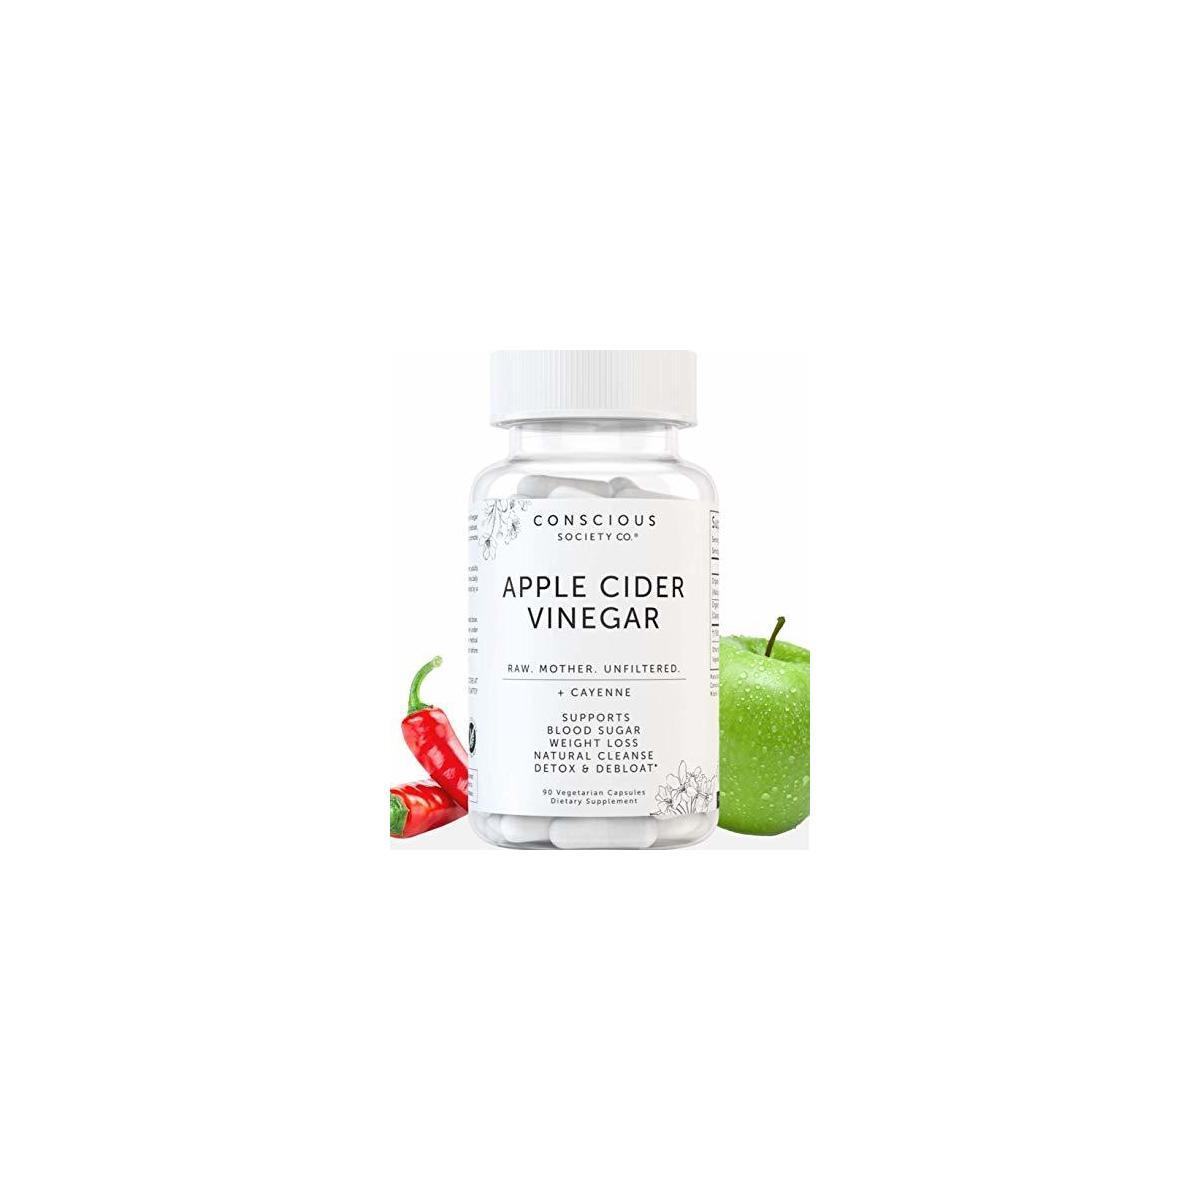 Organic Apple Cider Vinegar Capsules with Mother and Cayenne | Apple Cider Vinegar Pills for Gut Health, Digestion, Bloating Relief, Immune Boost and Weight Loss